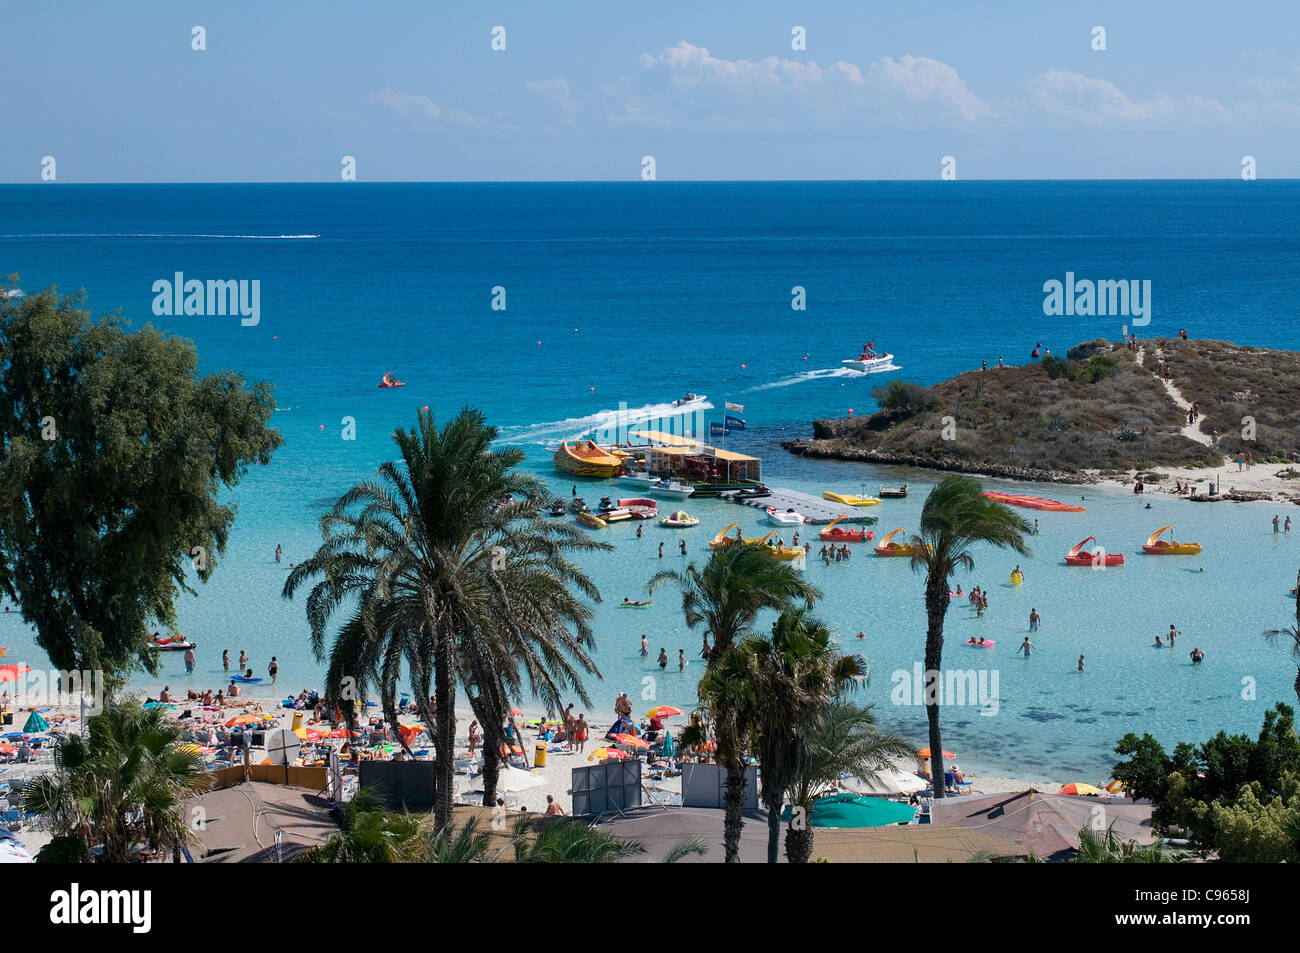 Watersports at Nissi Beach, Ayia Napa, Cyprus - Stock Image